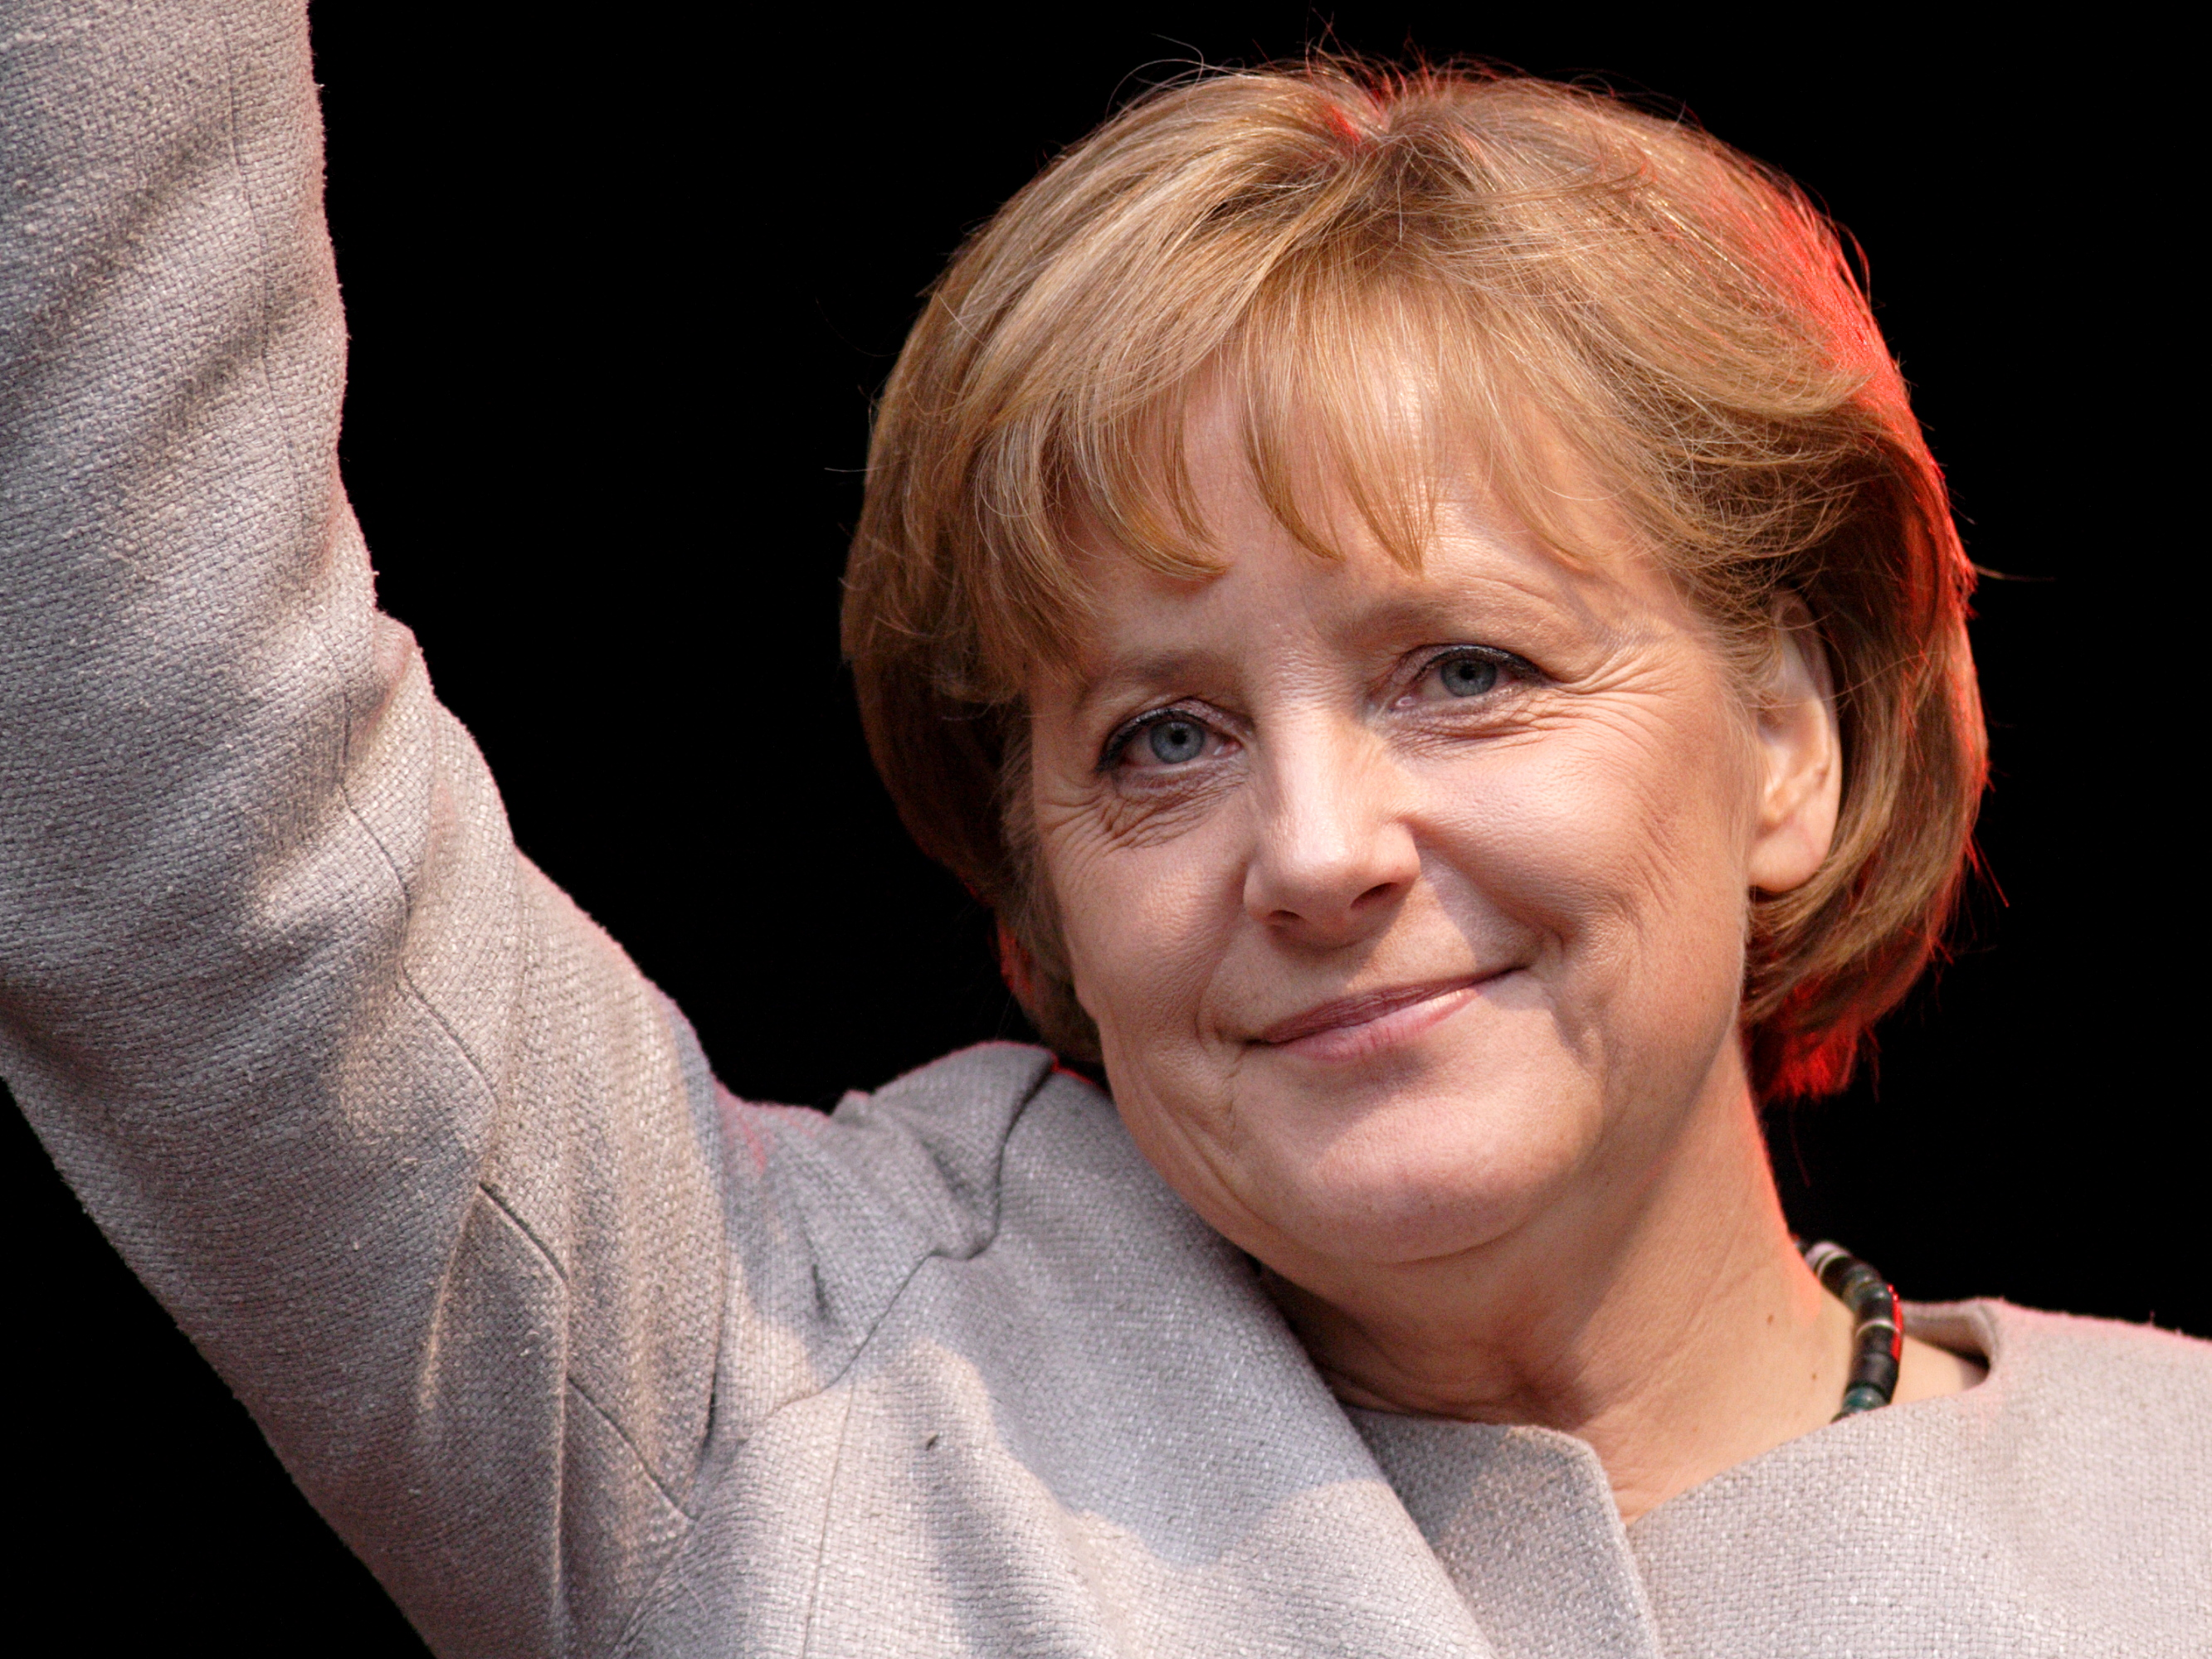 Germany's Election and Angela Merkel's Struggle for Political Survival